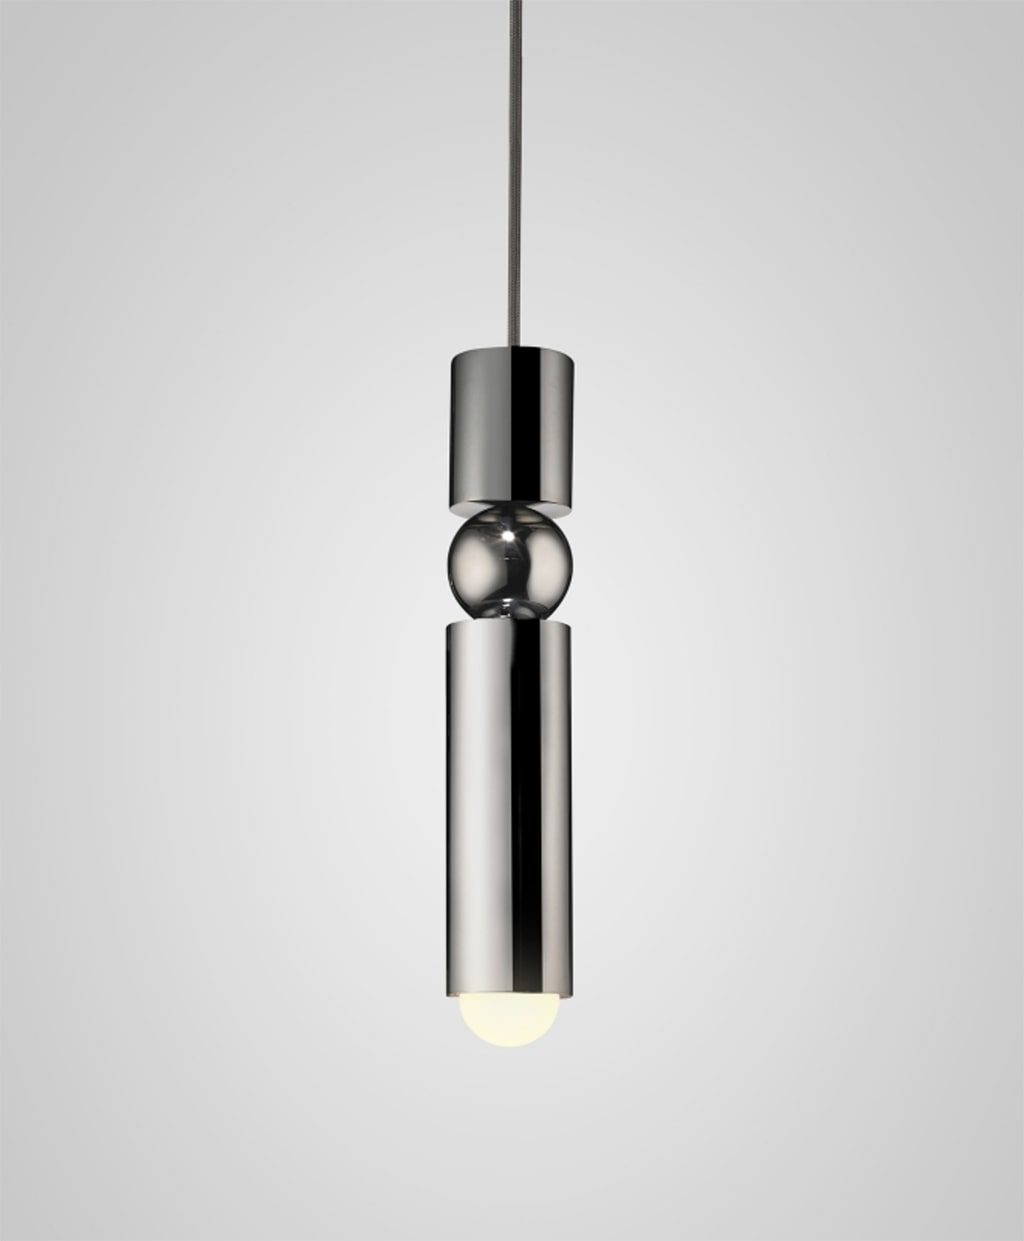 LEE BROOM - FULCRUM LIGHT